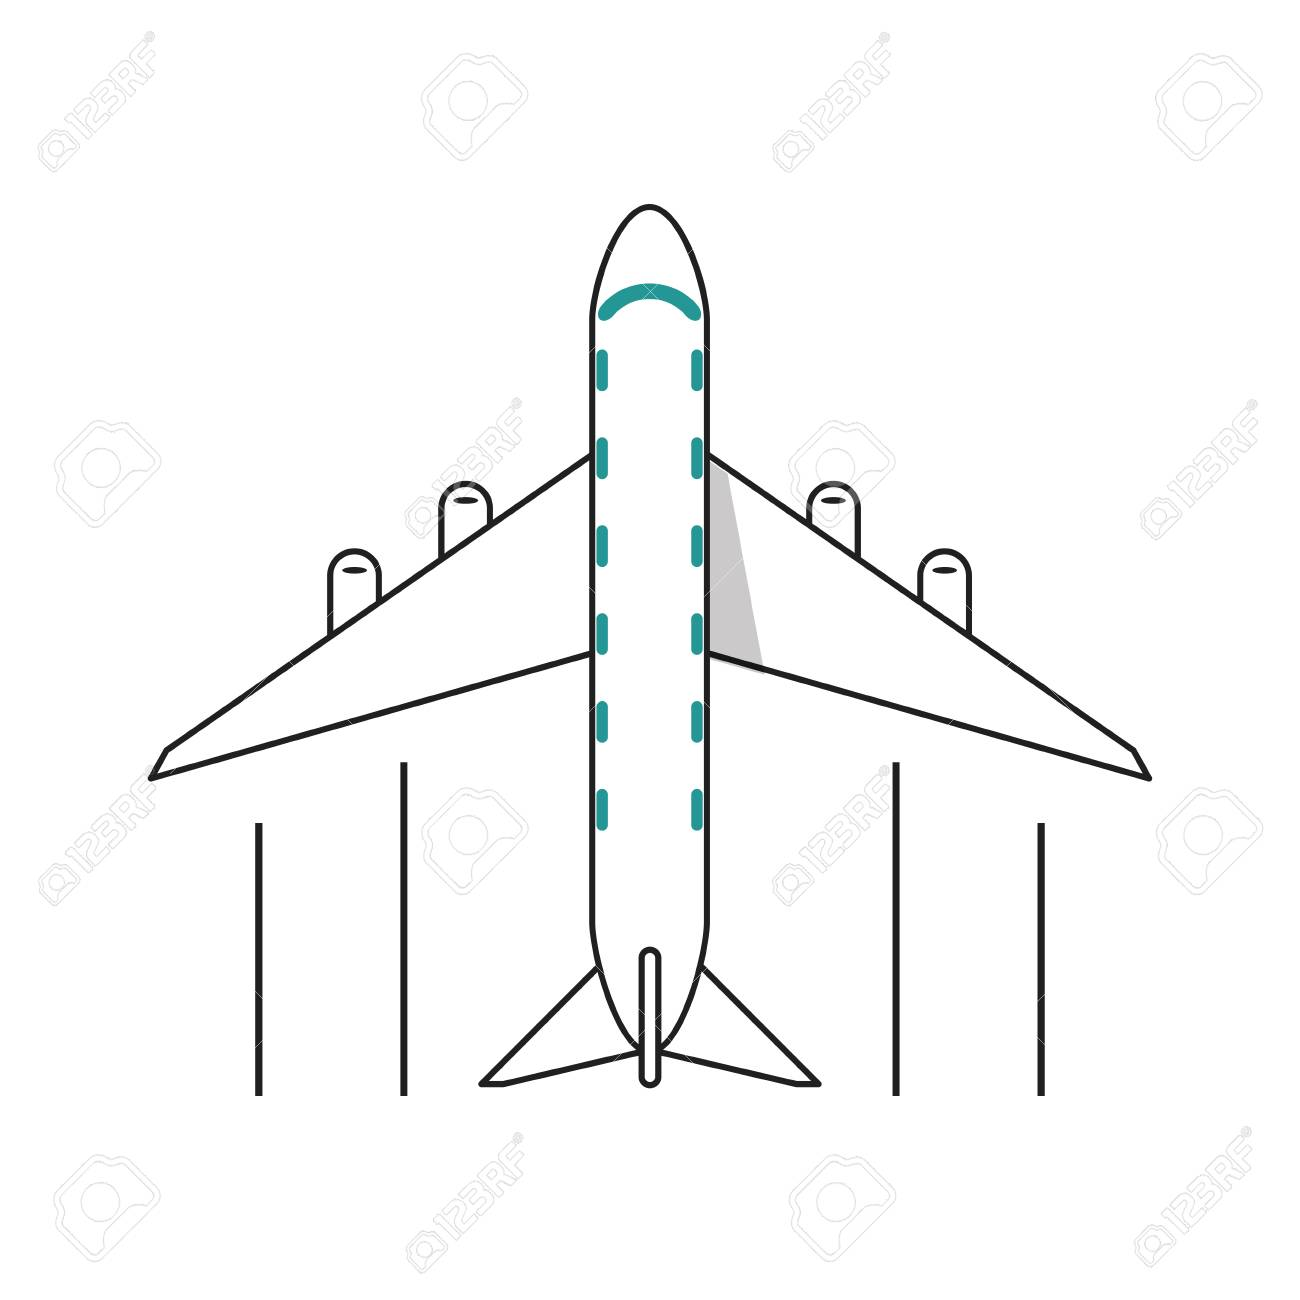 Airplane Vehicle Icon Transportation Travel And Ride Theme